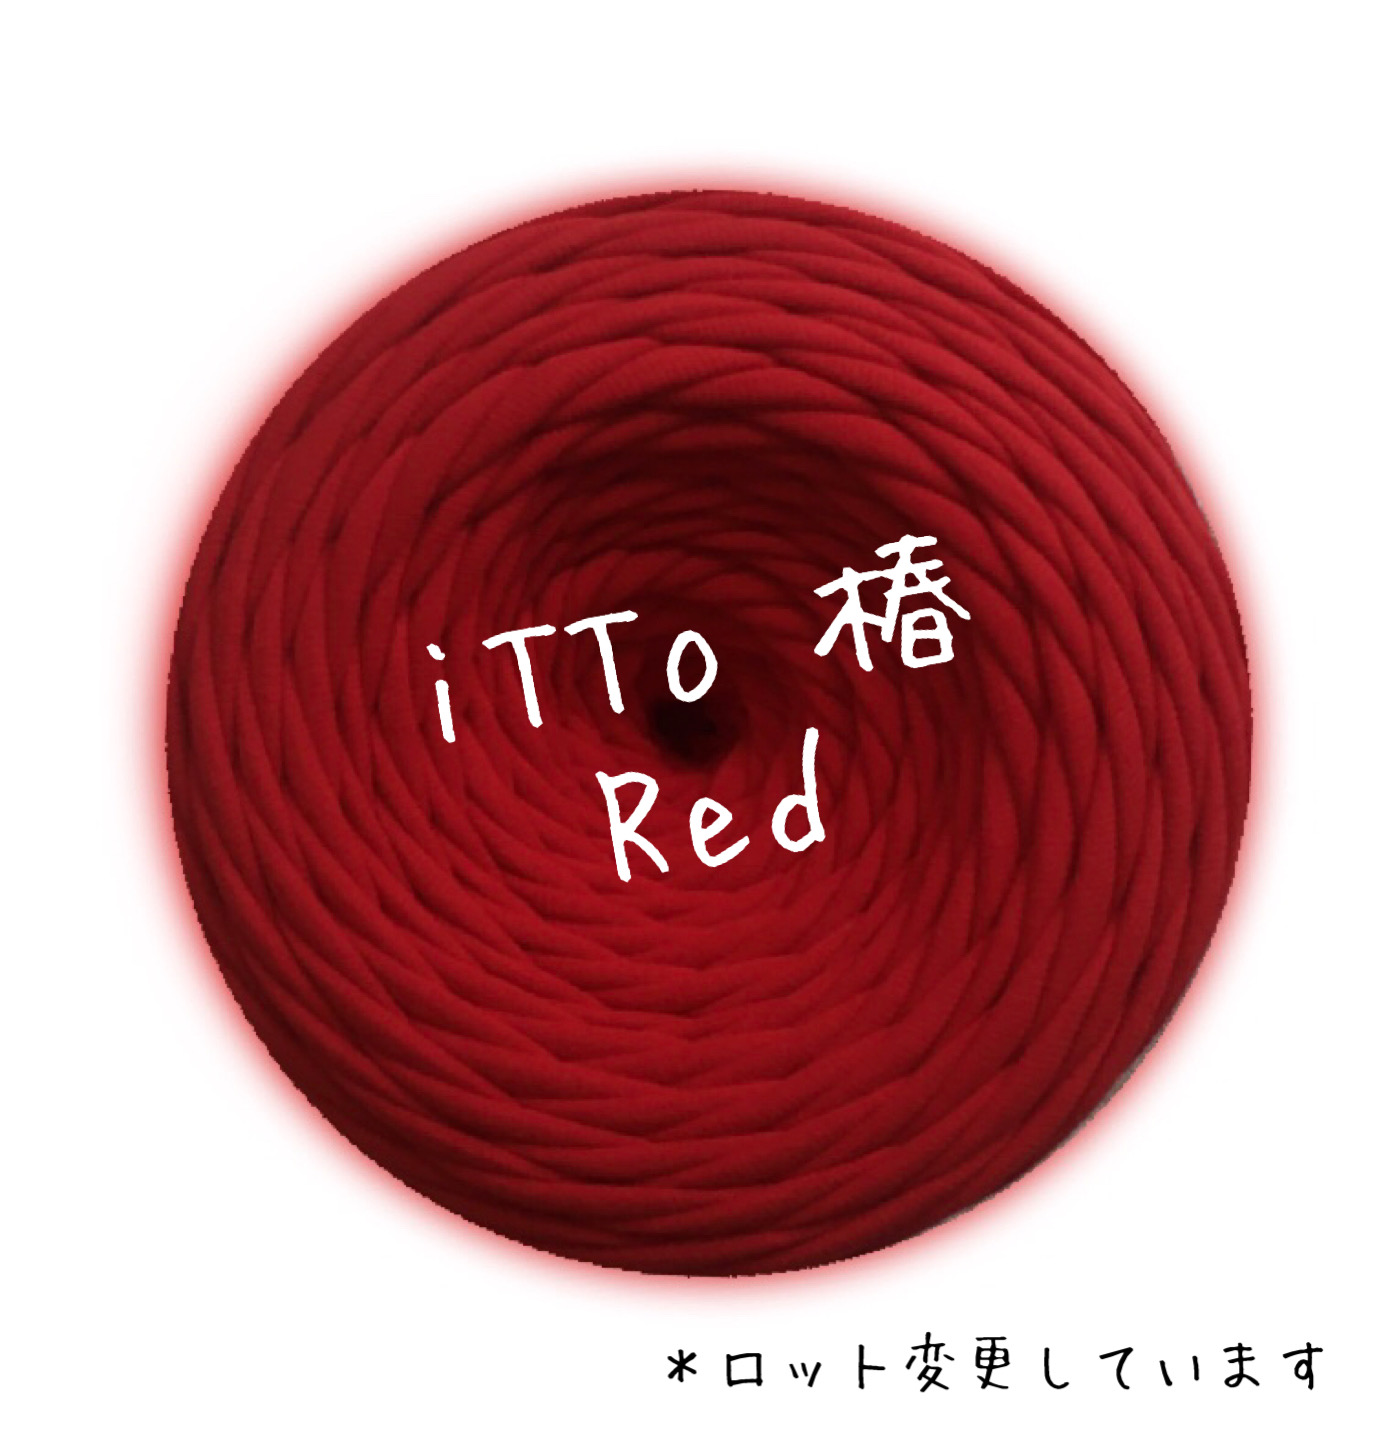 iTTo 椿 Red